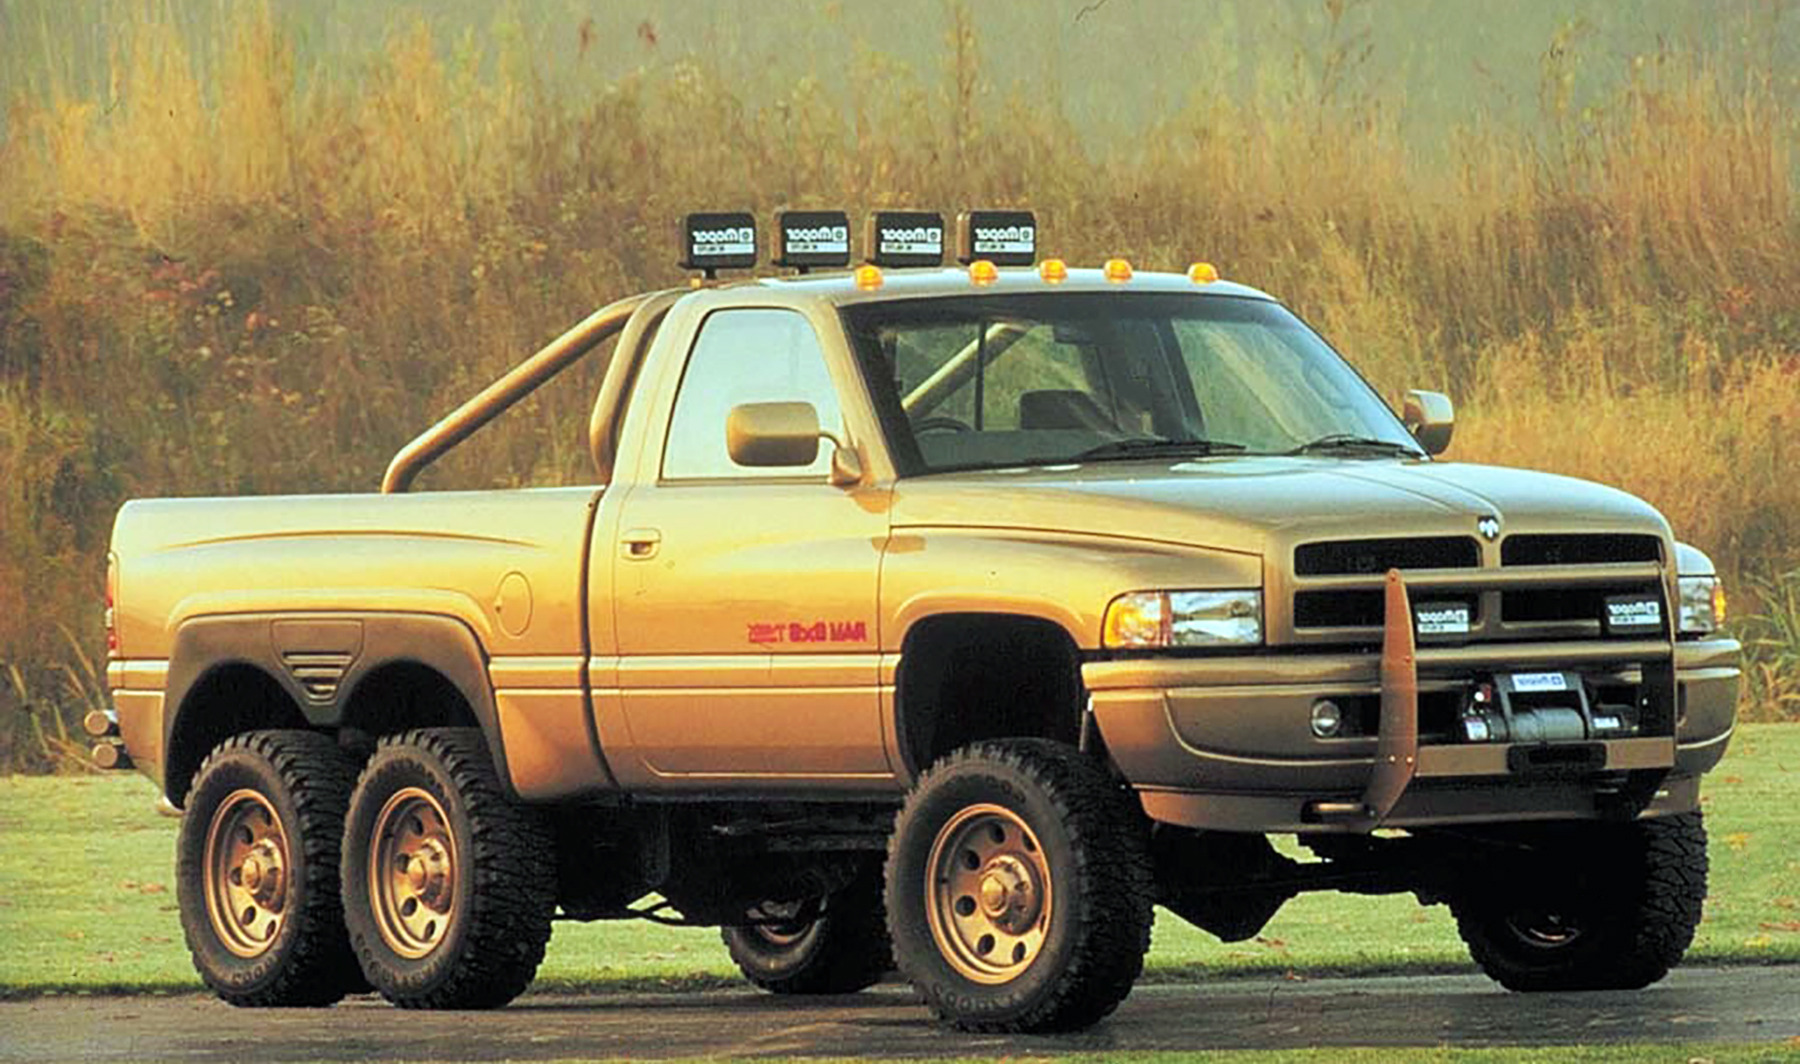 Forgotten Concept Dodge Ram T Rex 6x6 The Daily Drive Consumer Guide The Daily Drive Consumer Guide